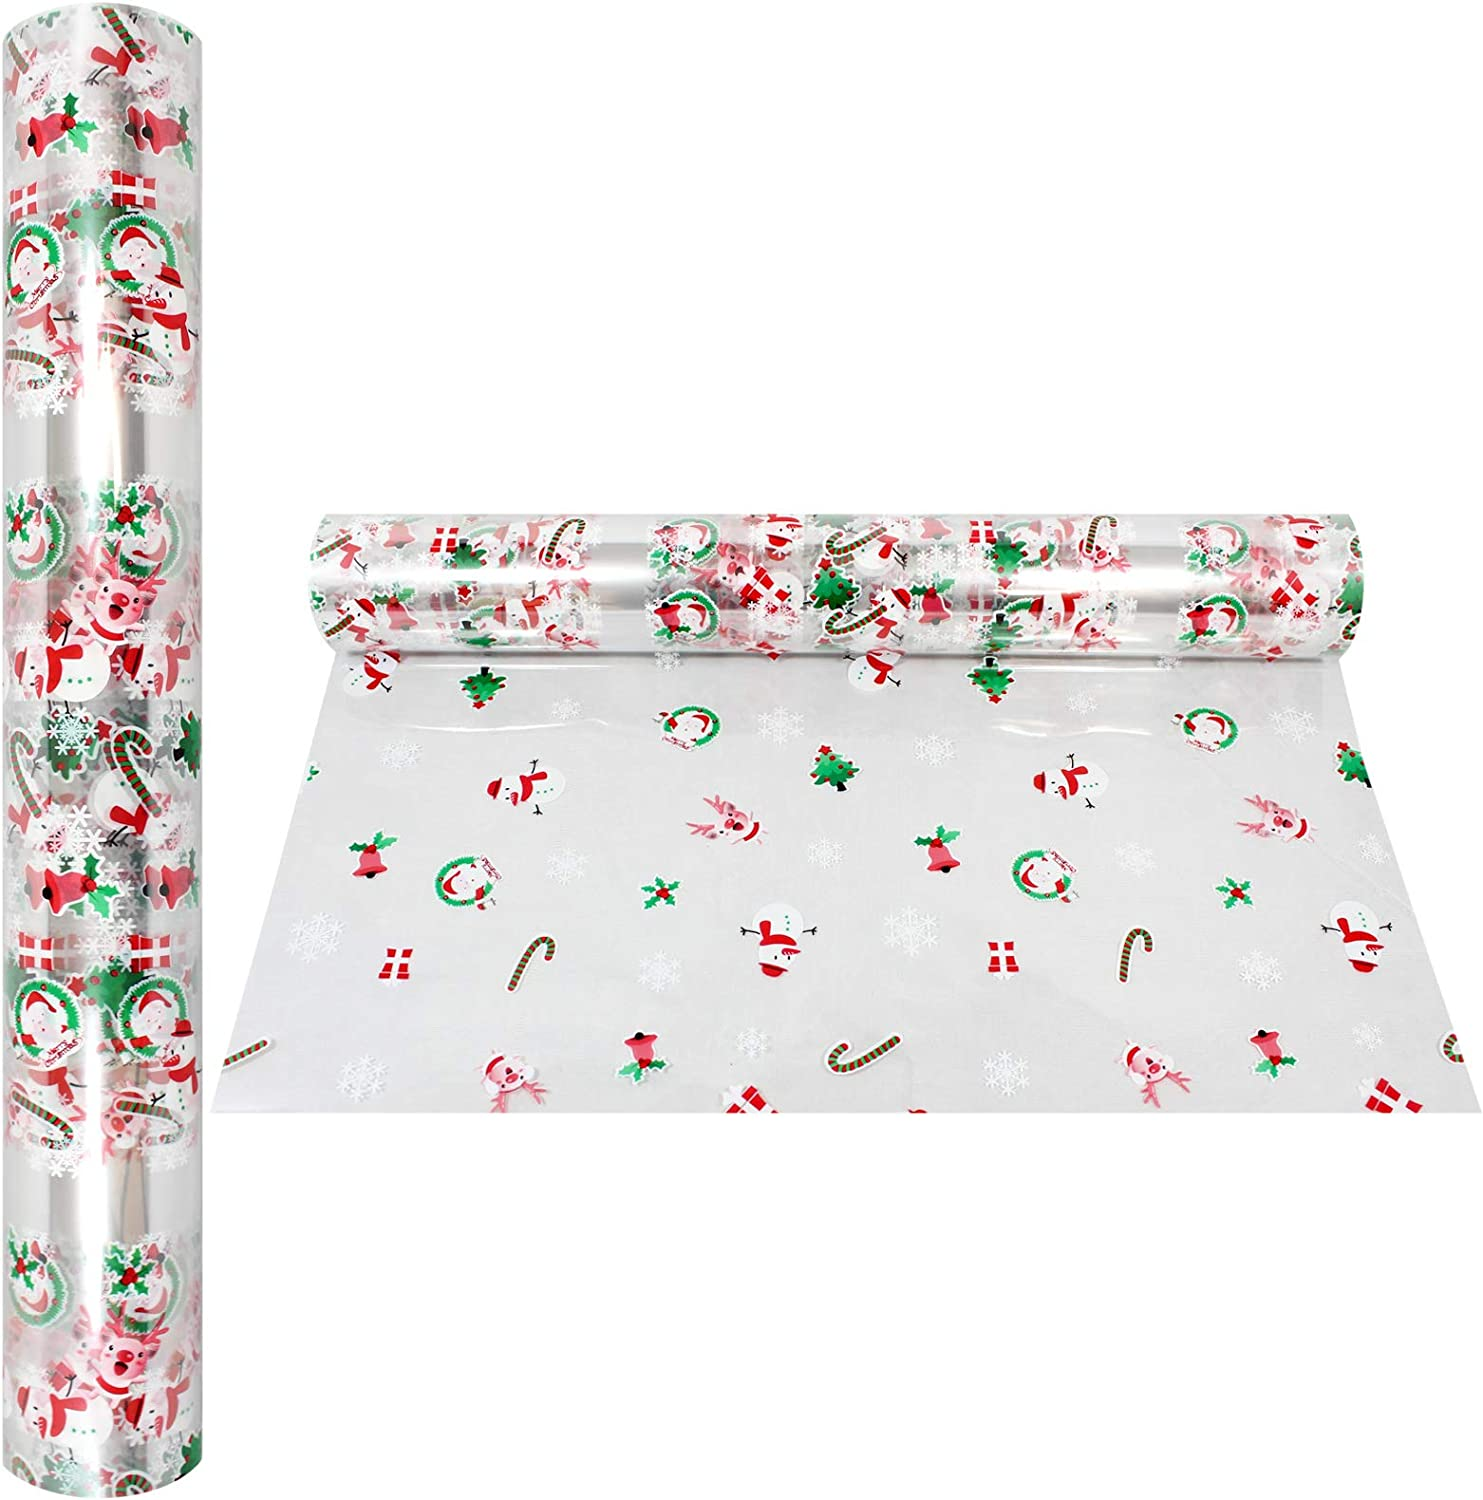 """100/' Ft Crystal Clear with Christmas Designs  Gifts Snowman Cello Roll Long X 16/"""" in Treats Santa Baskets Christmas Cellophane Wrap Roll 2.3 Mil Thick Anapoliz Wide Cello Wrapping Paper"""